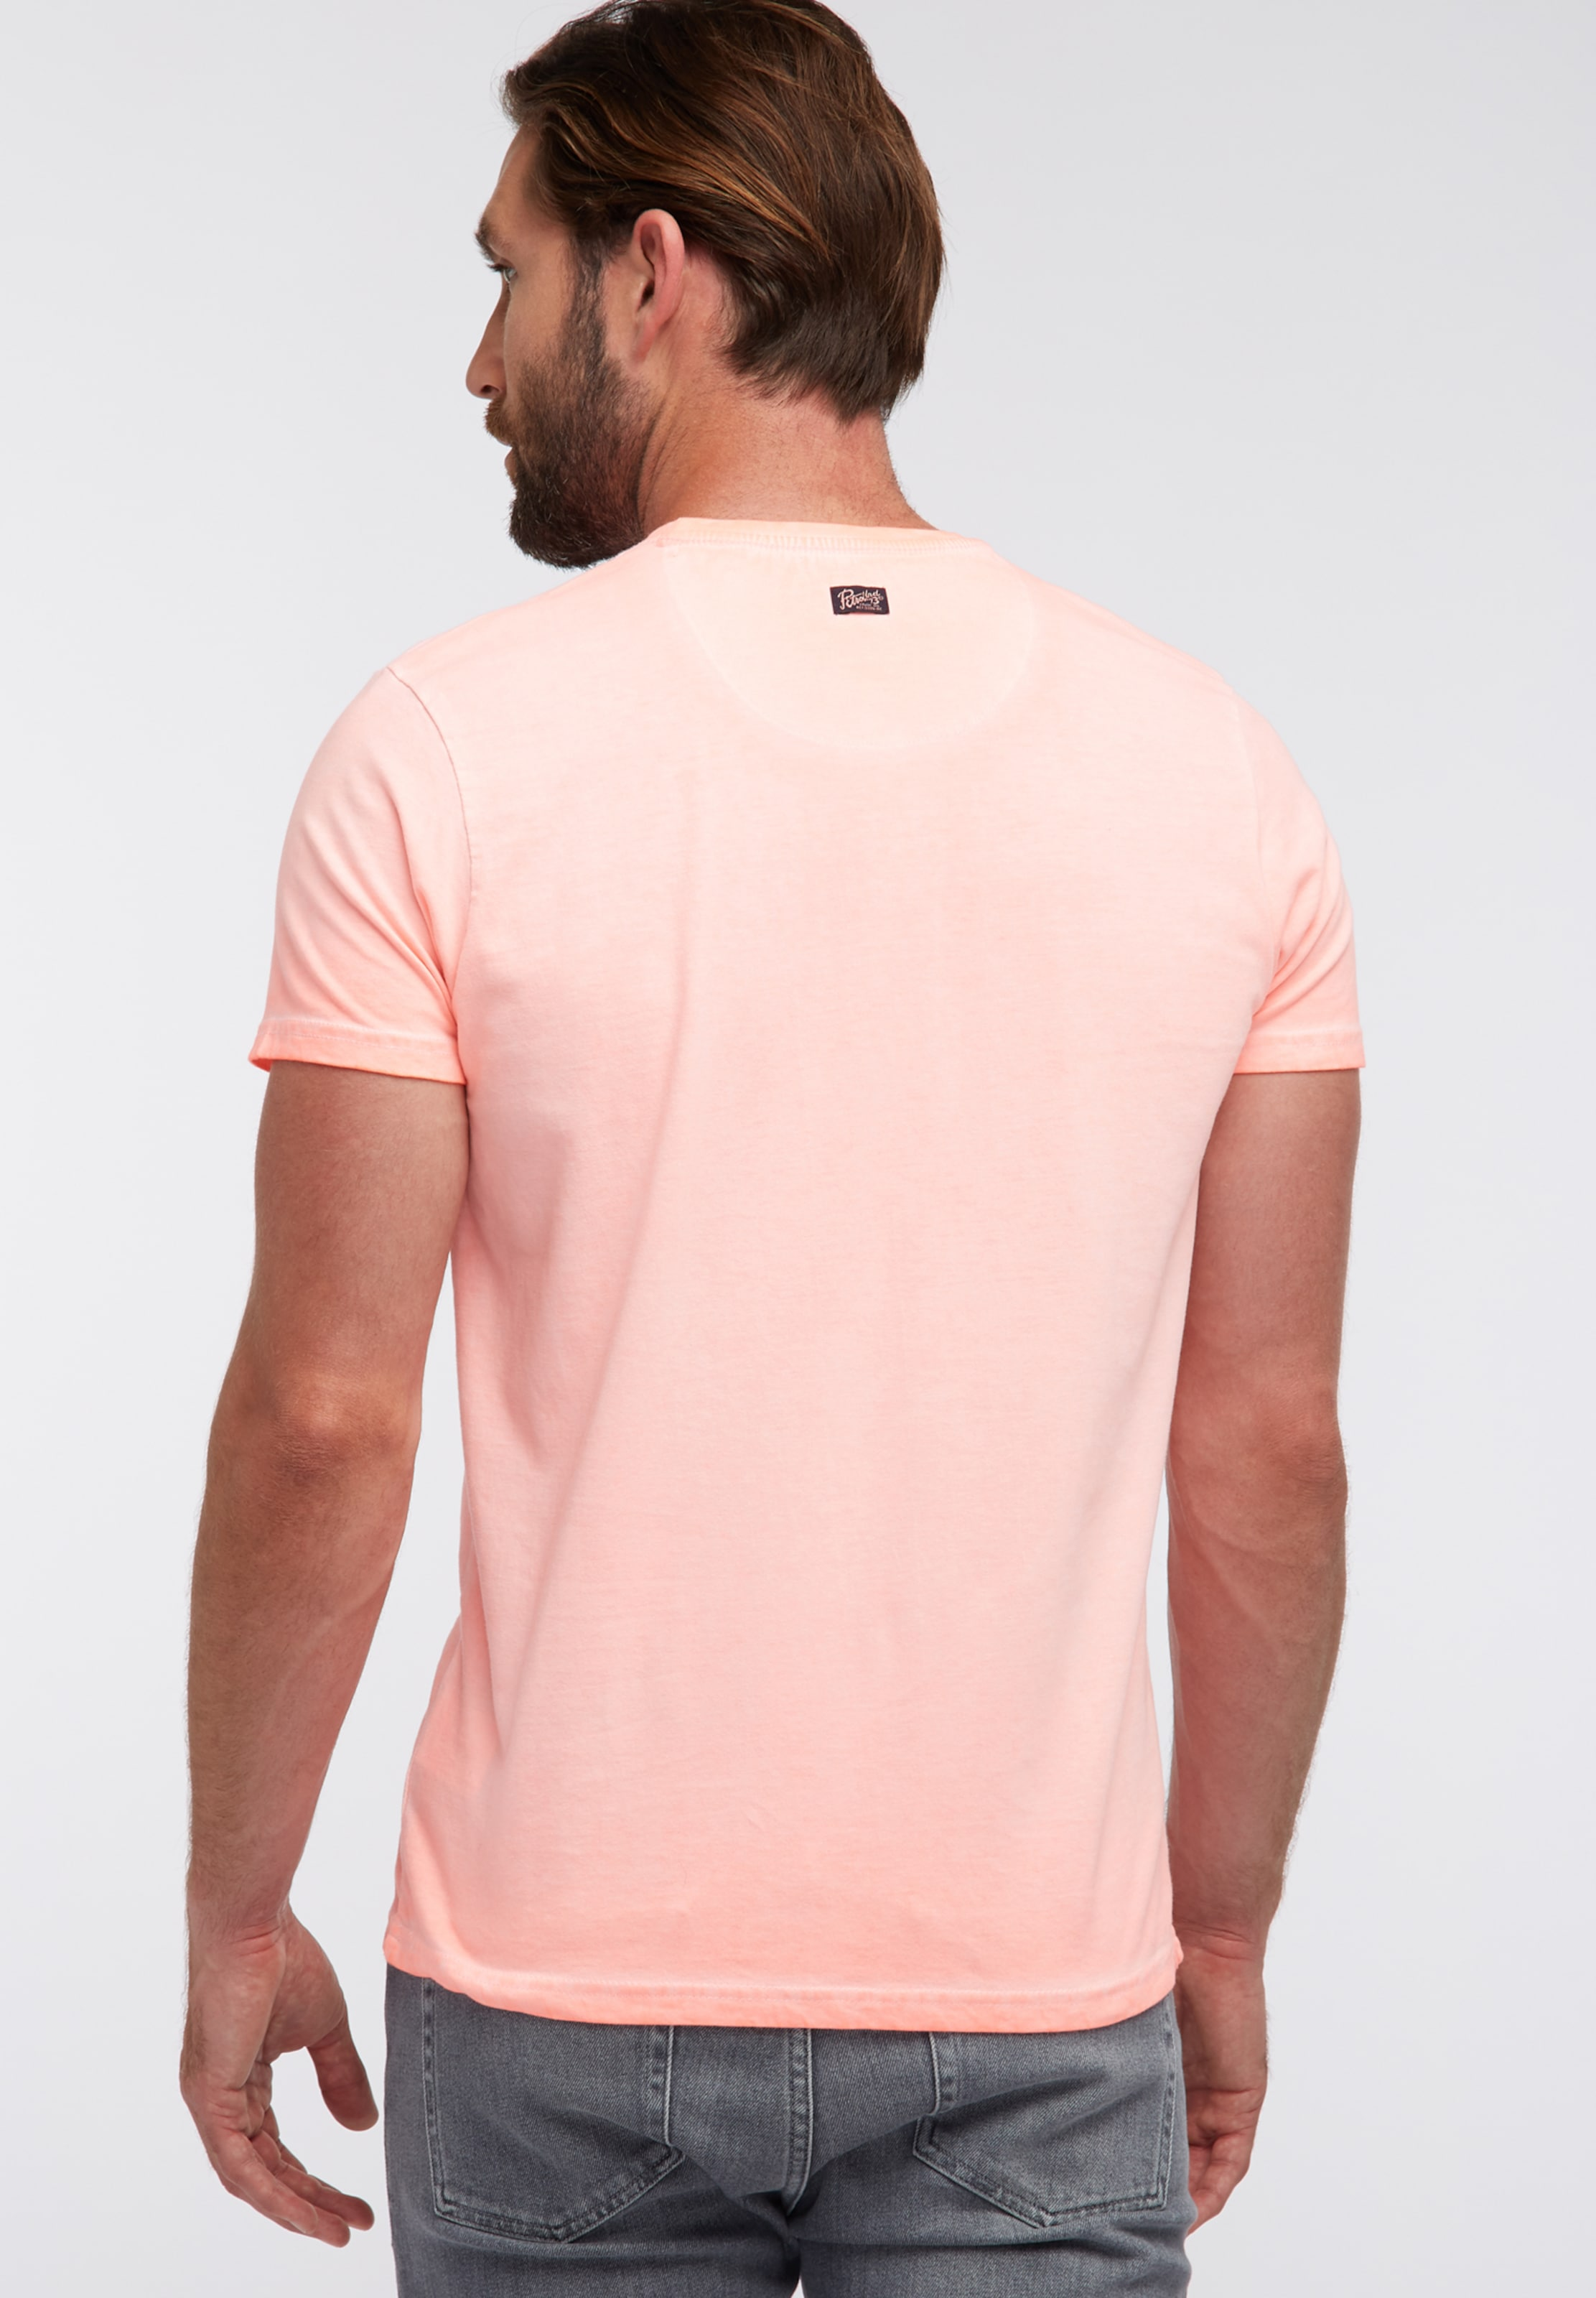 shirt Rosa Petrol T In Industries JlKcF1